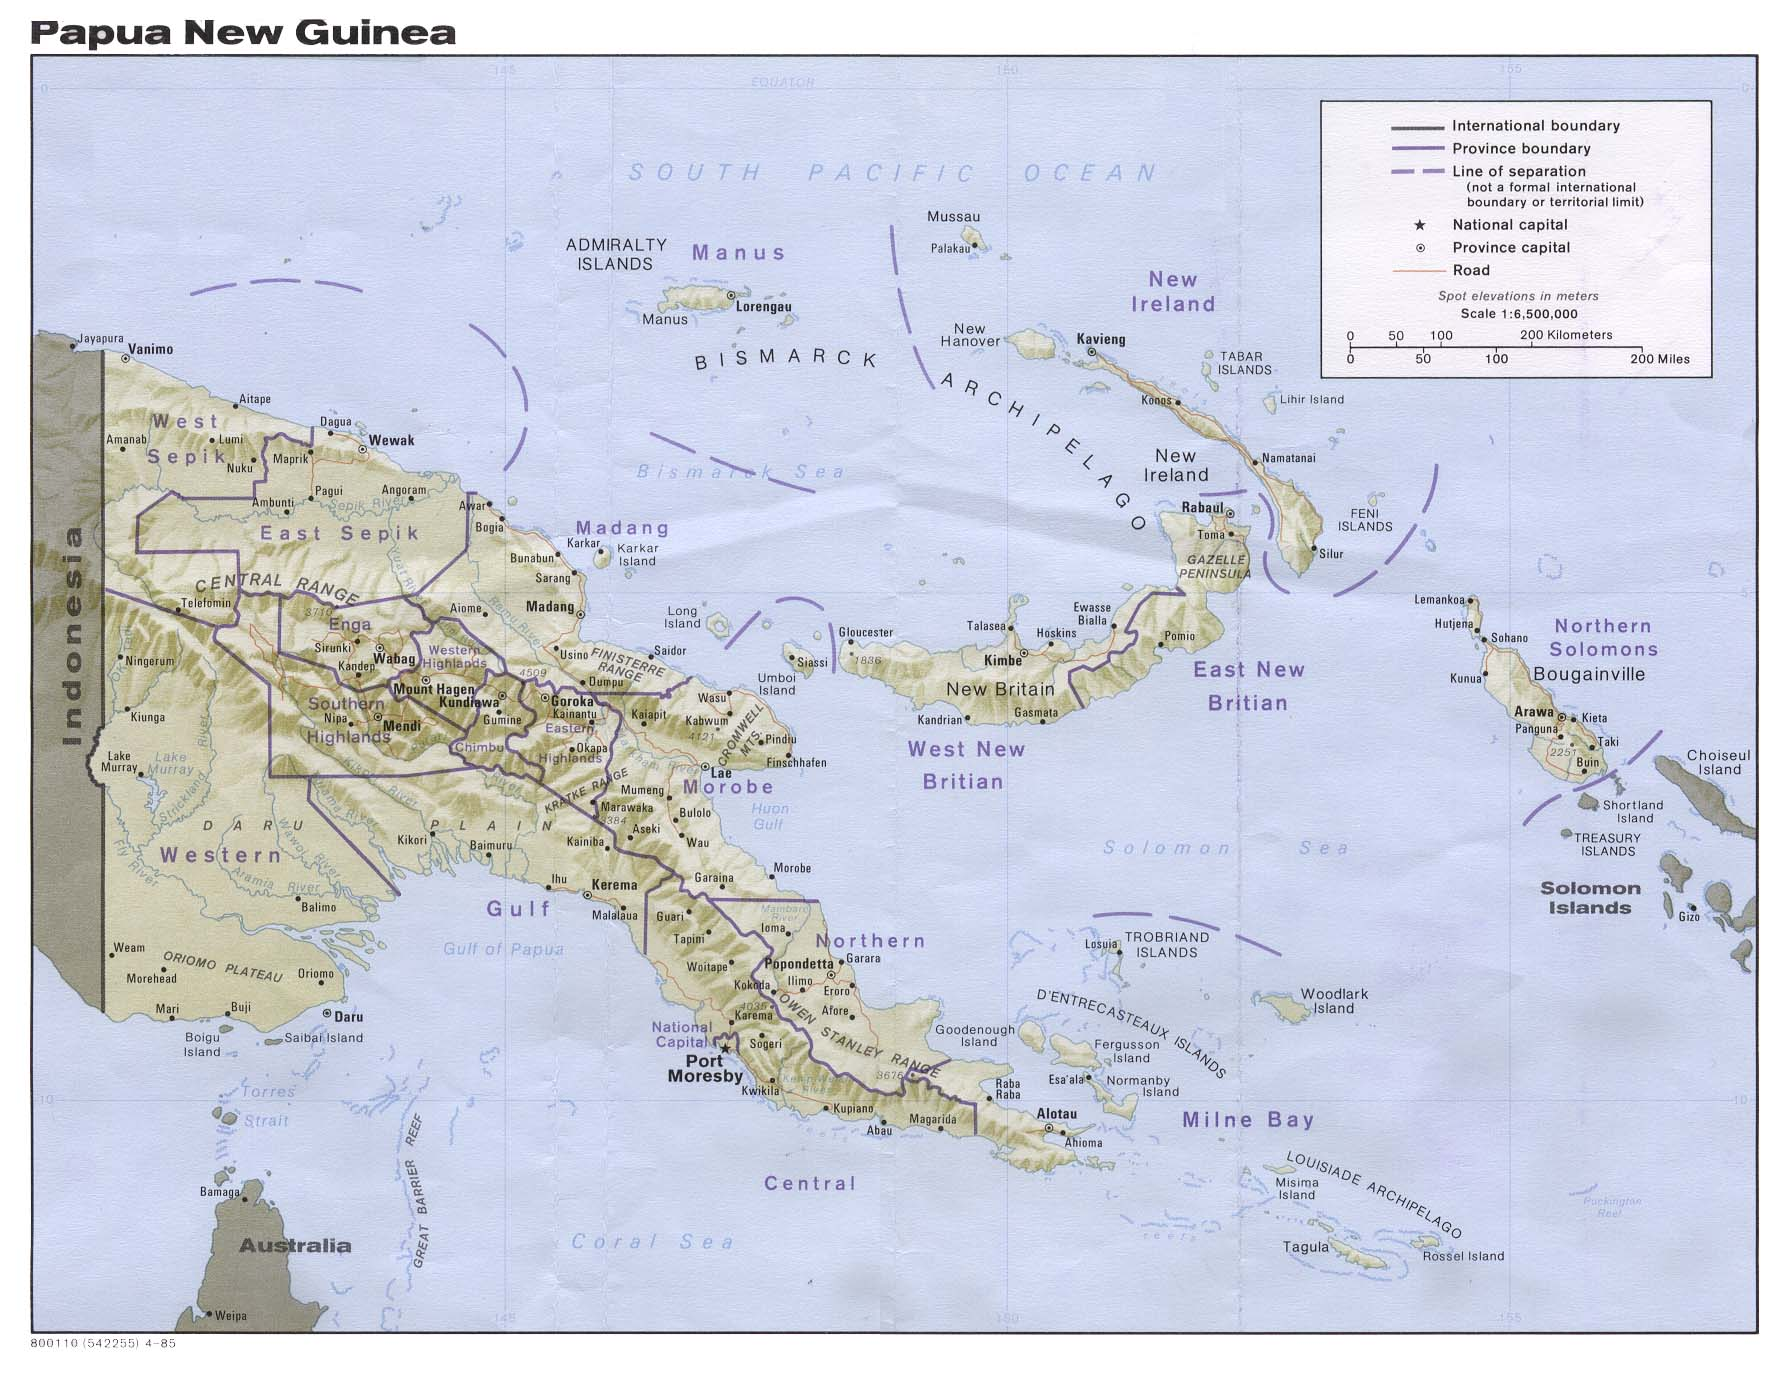 Download this Papua New Guinea Maps picture